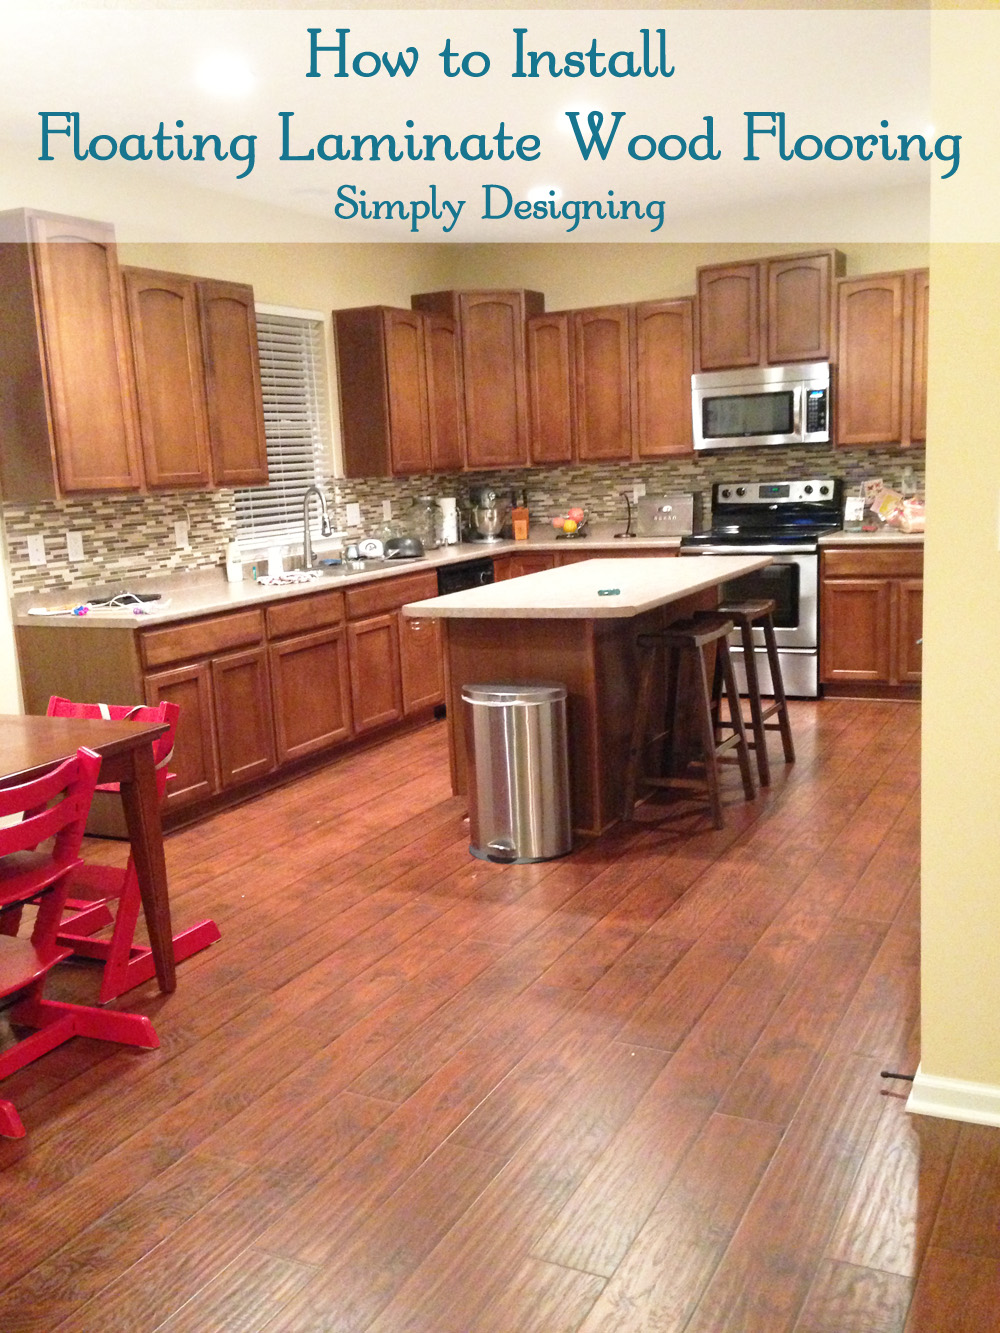 Laminate flooring how to install laminate flooring kitchen for Kitchen laminate flooring